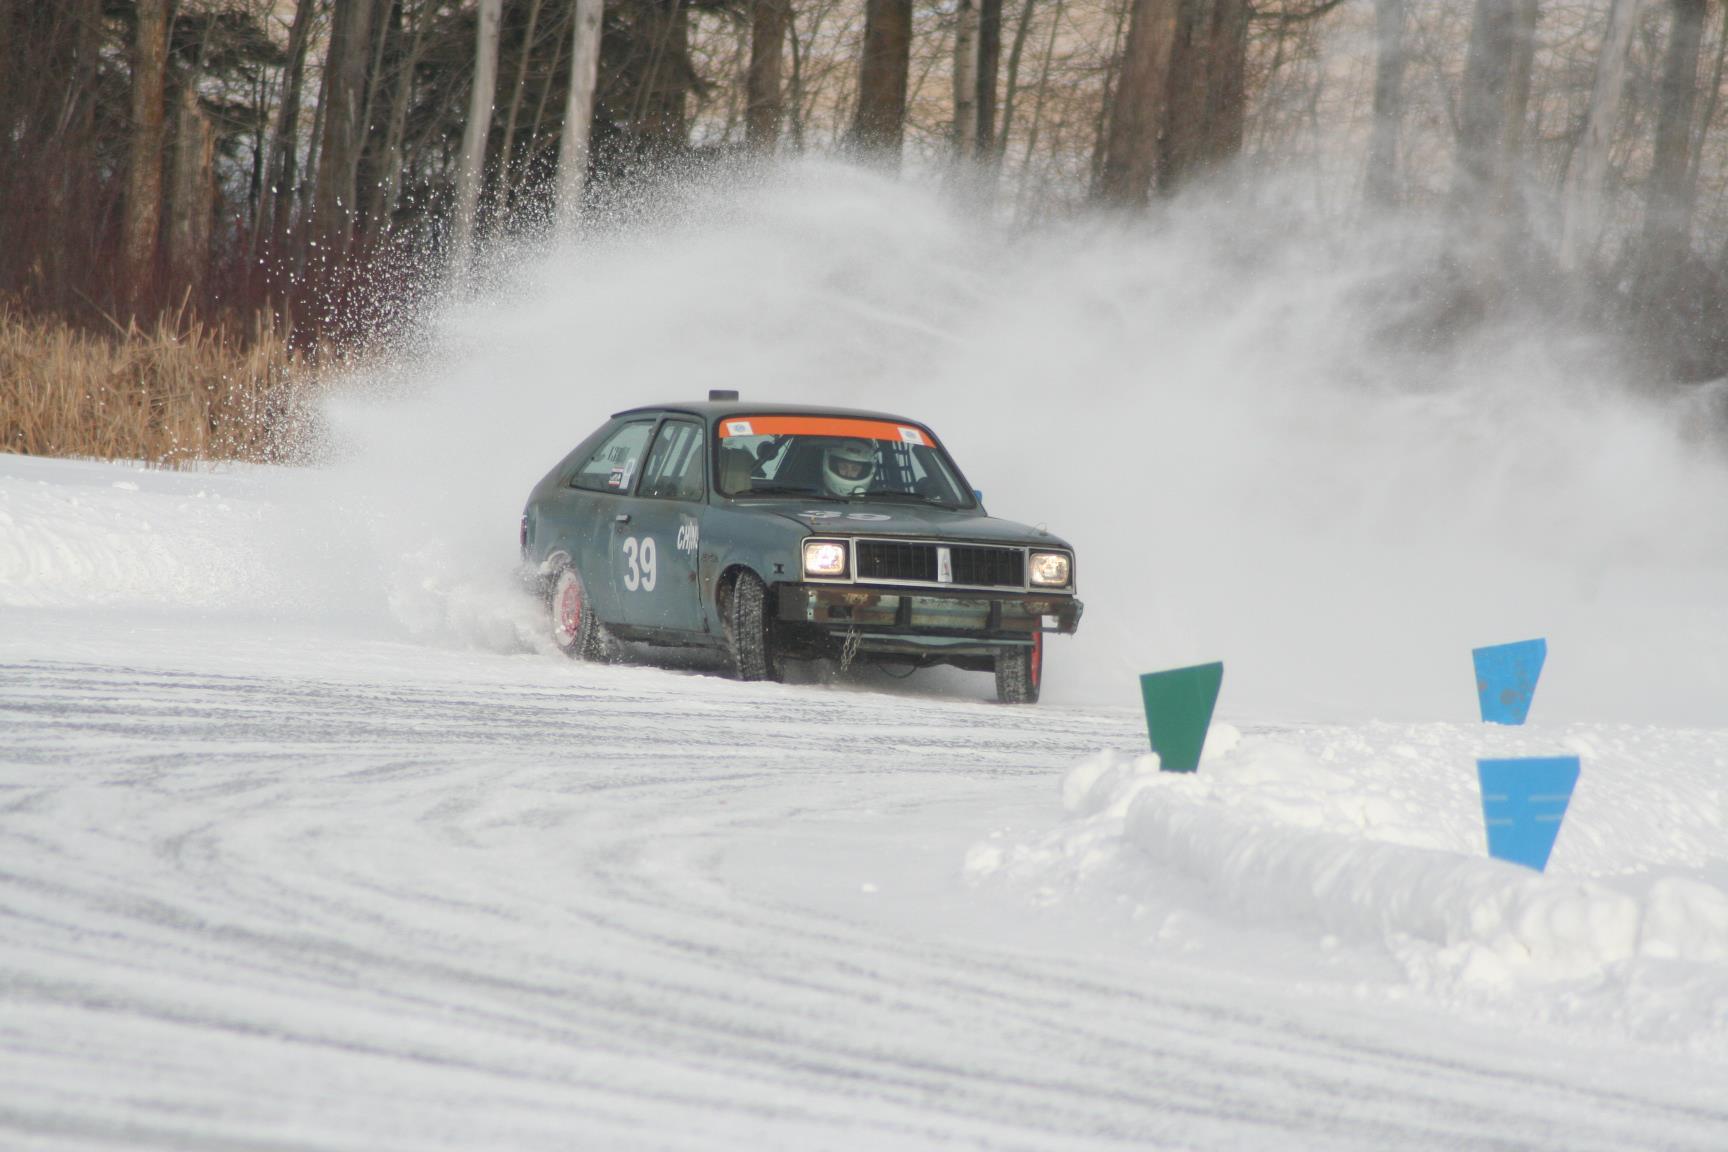 Track Marshal training session - Jan 20, 6:30pm